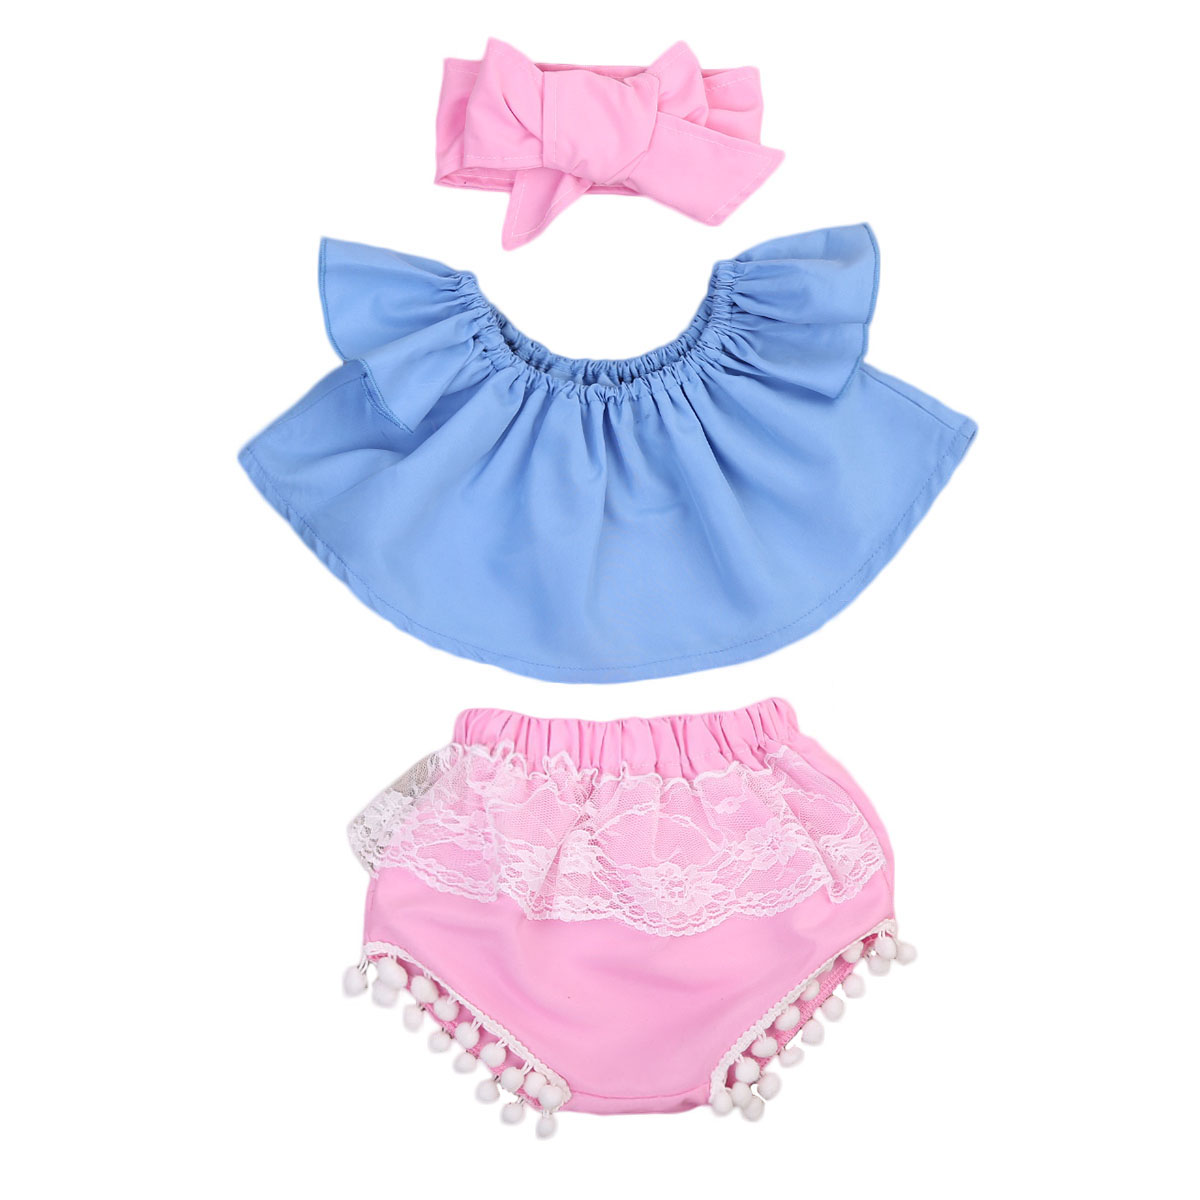 New Fashion Infant Baby Girl Clothes Set Off Shoulder Cotton Top T-Shirt+Shorts Pants 3PCS Outfits